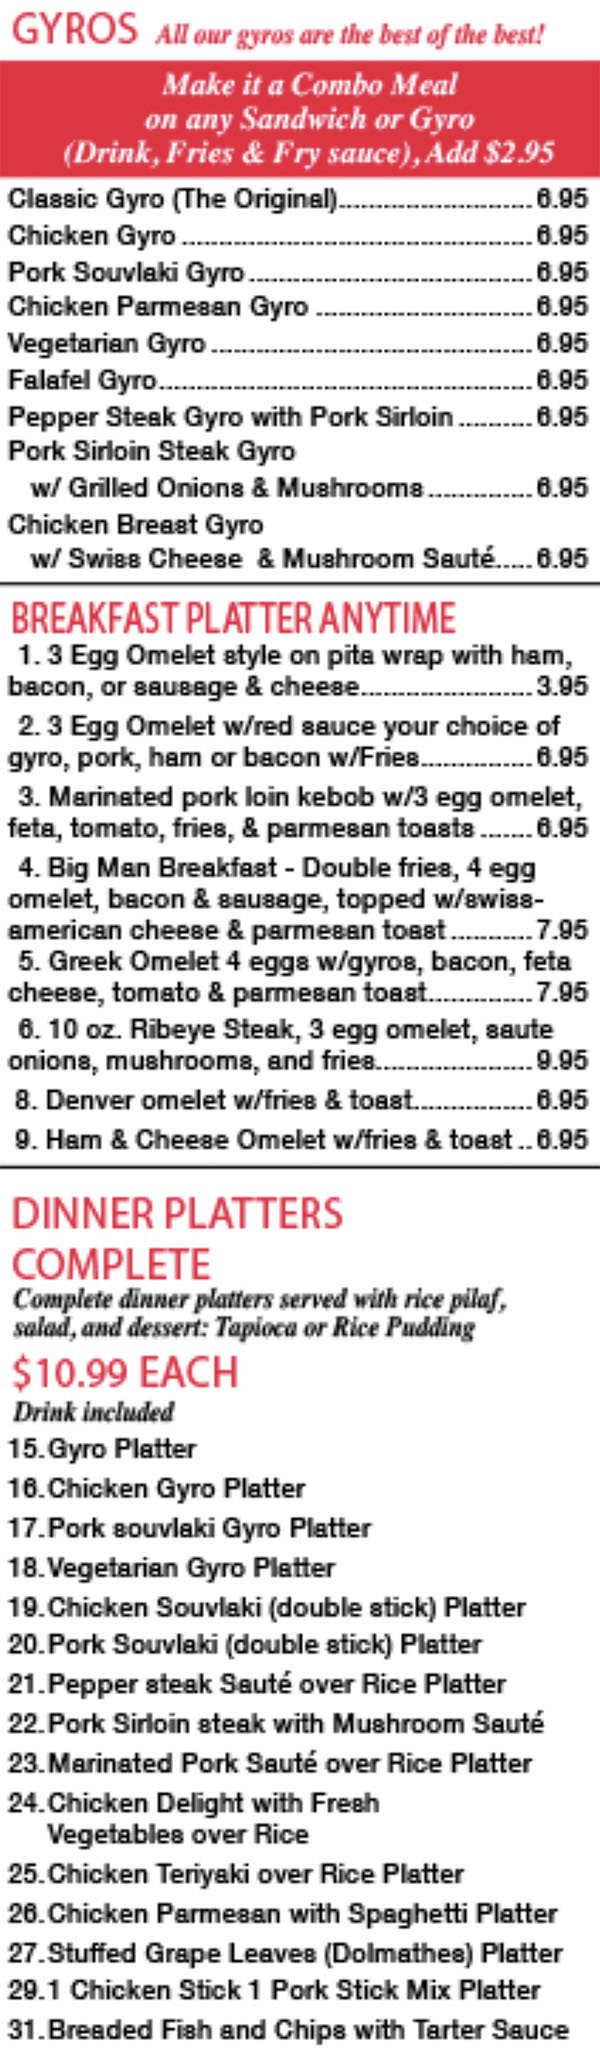 Mad Greek menu - gyro, breakfast, dinner platters